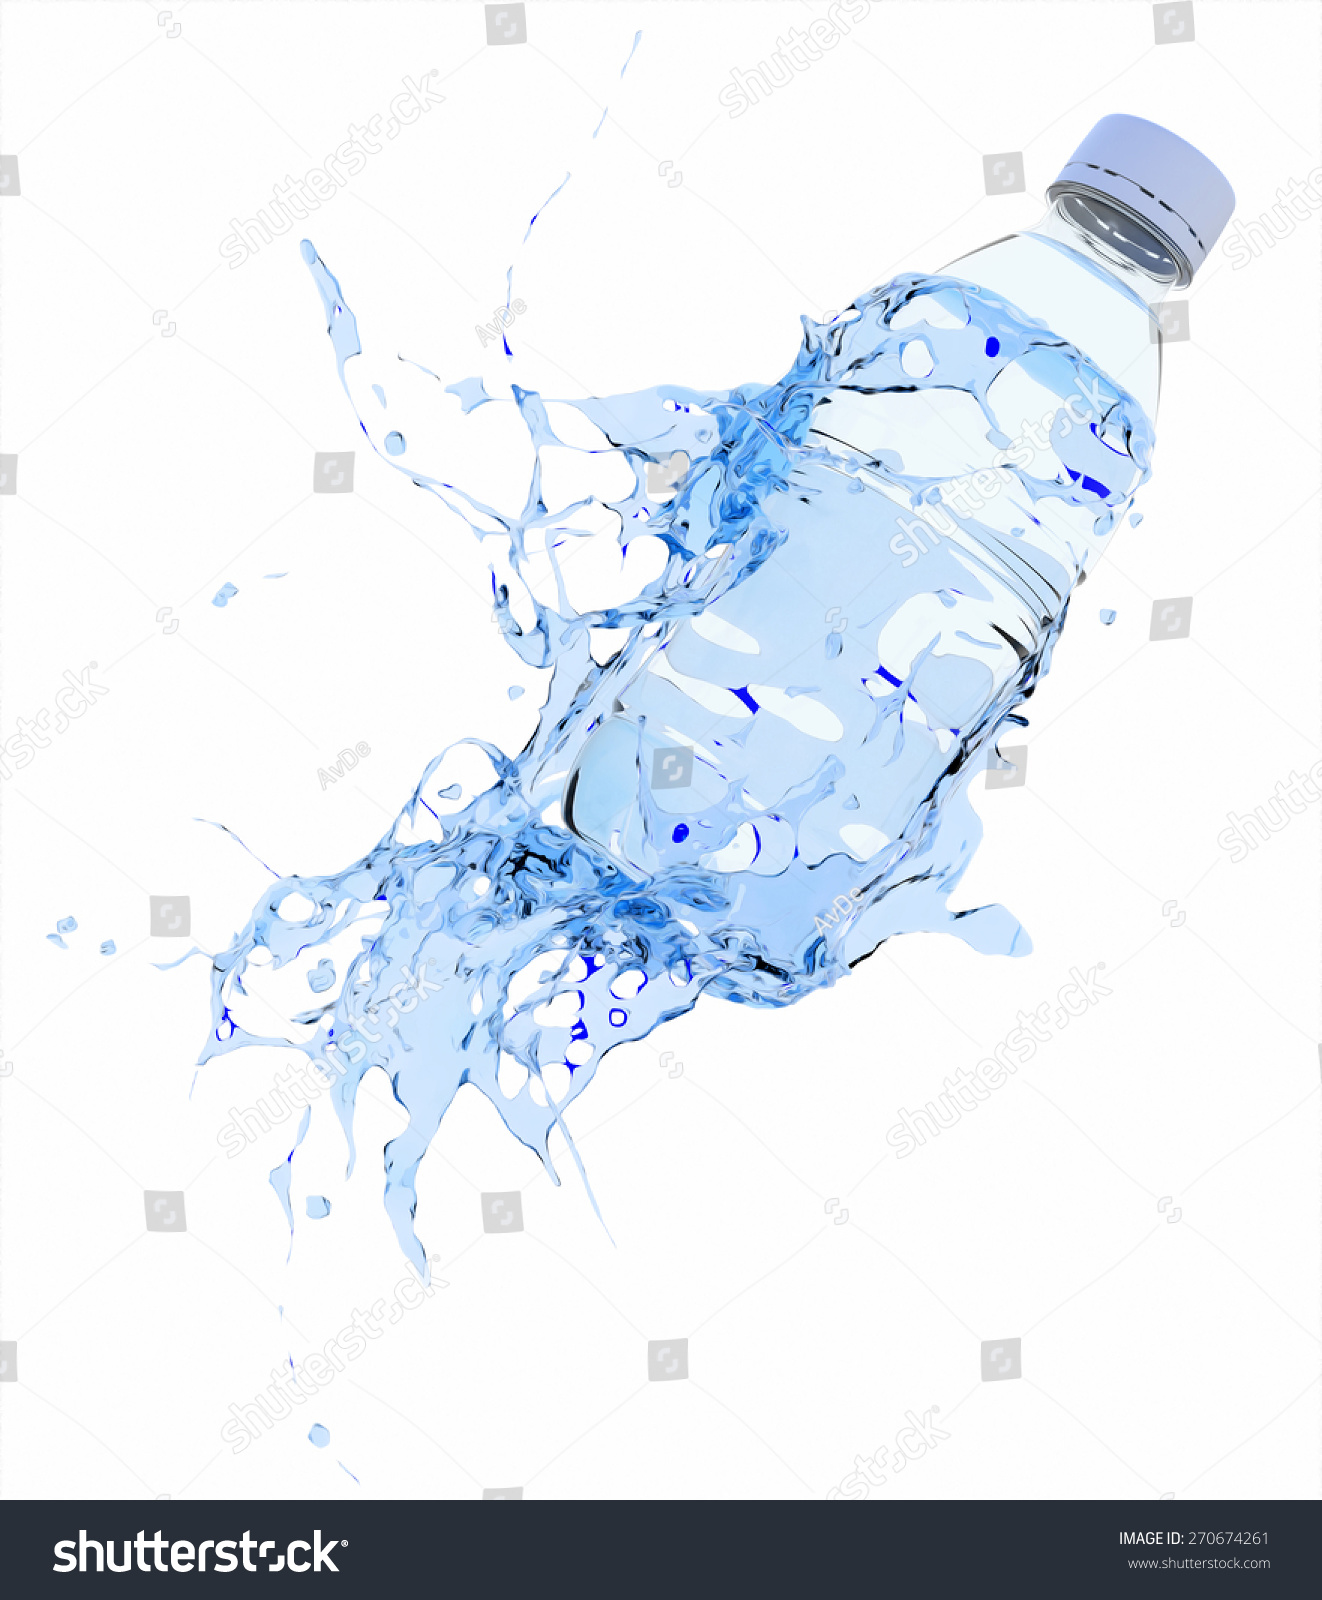 Water Splashing On Water Bottle Stock Illustration 270674261 ...